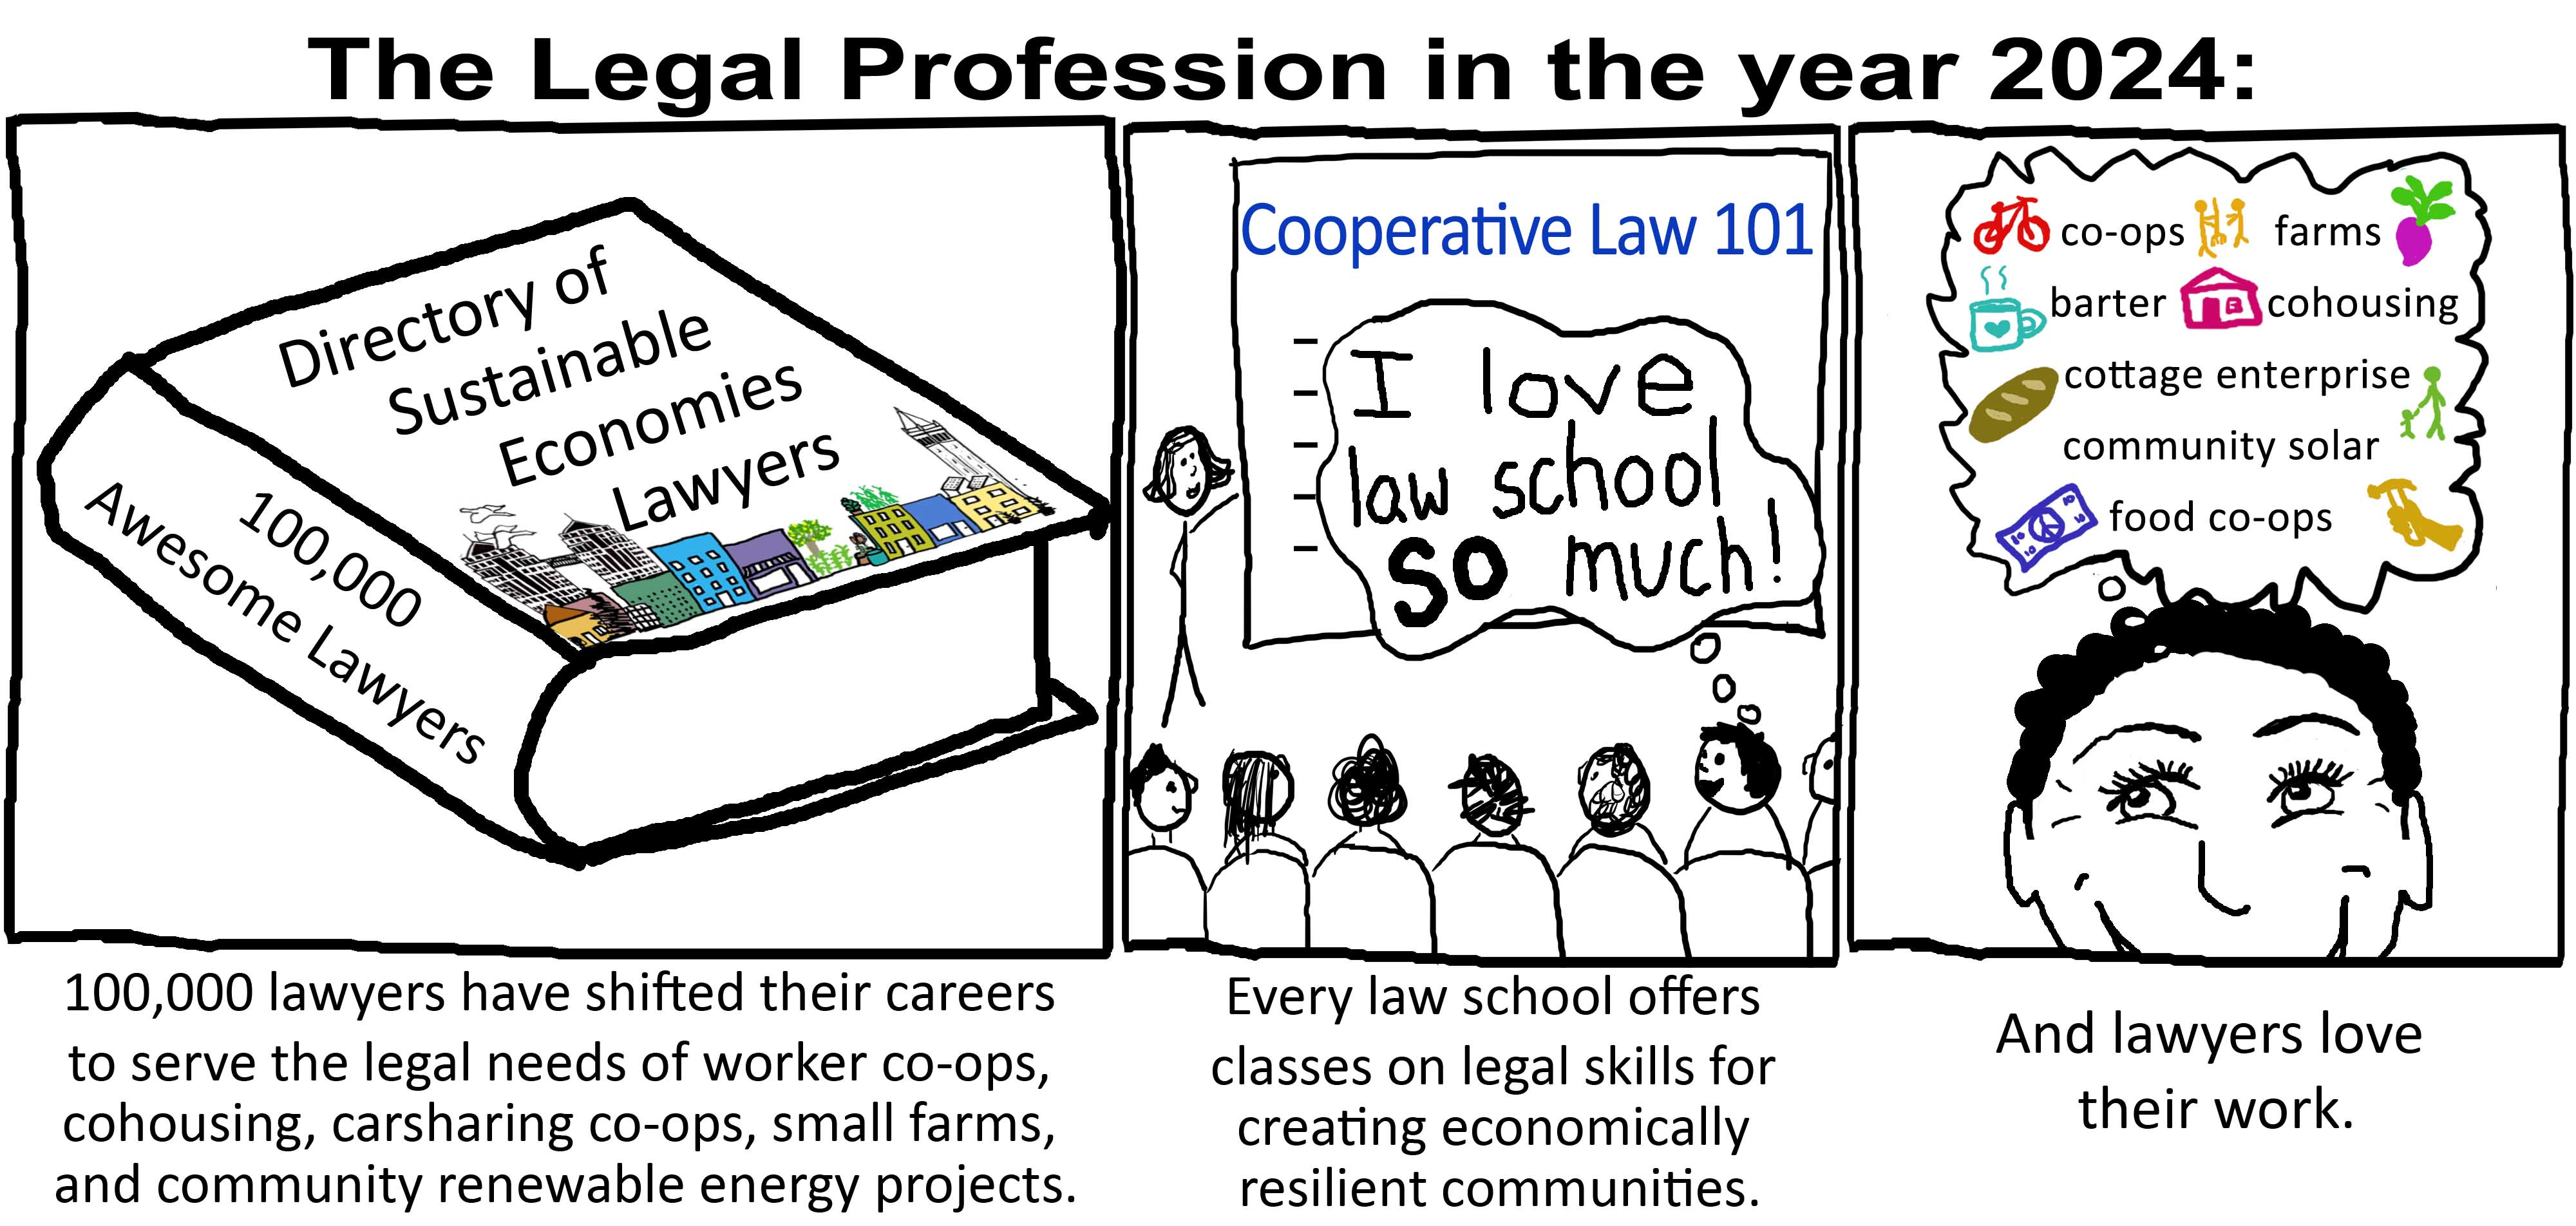 Legal_profession_in_year_2024.jpg